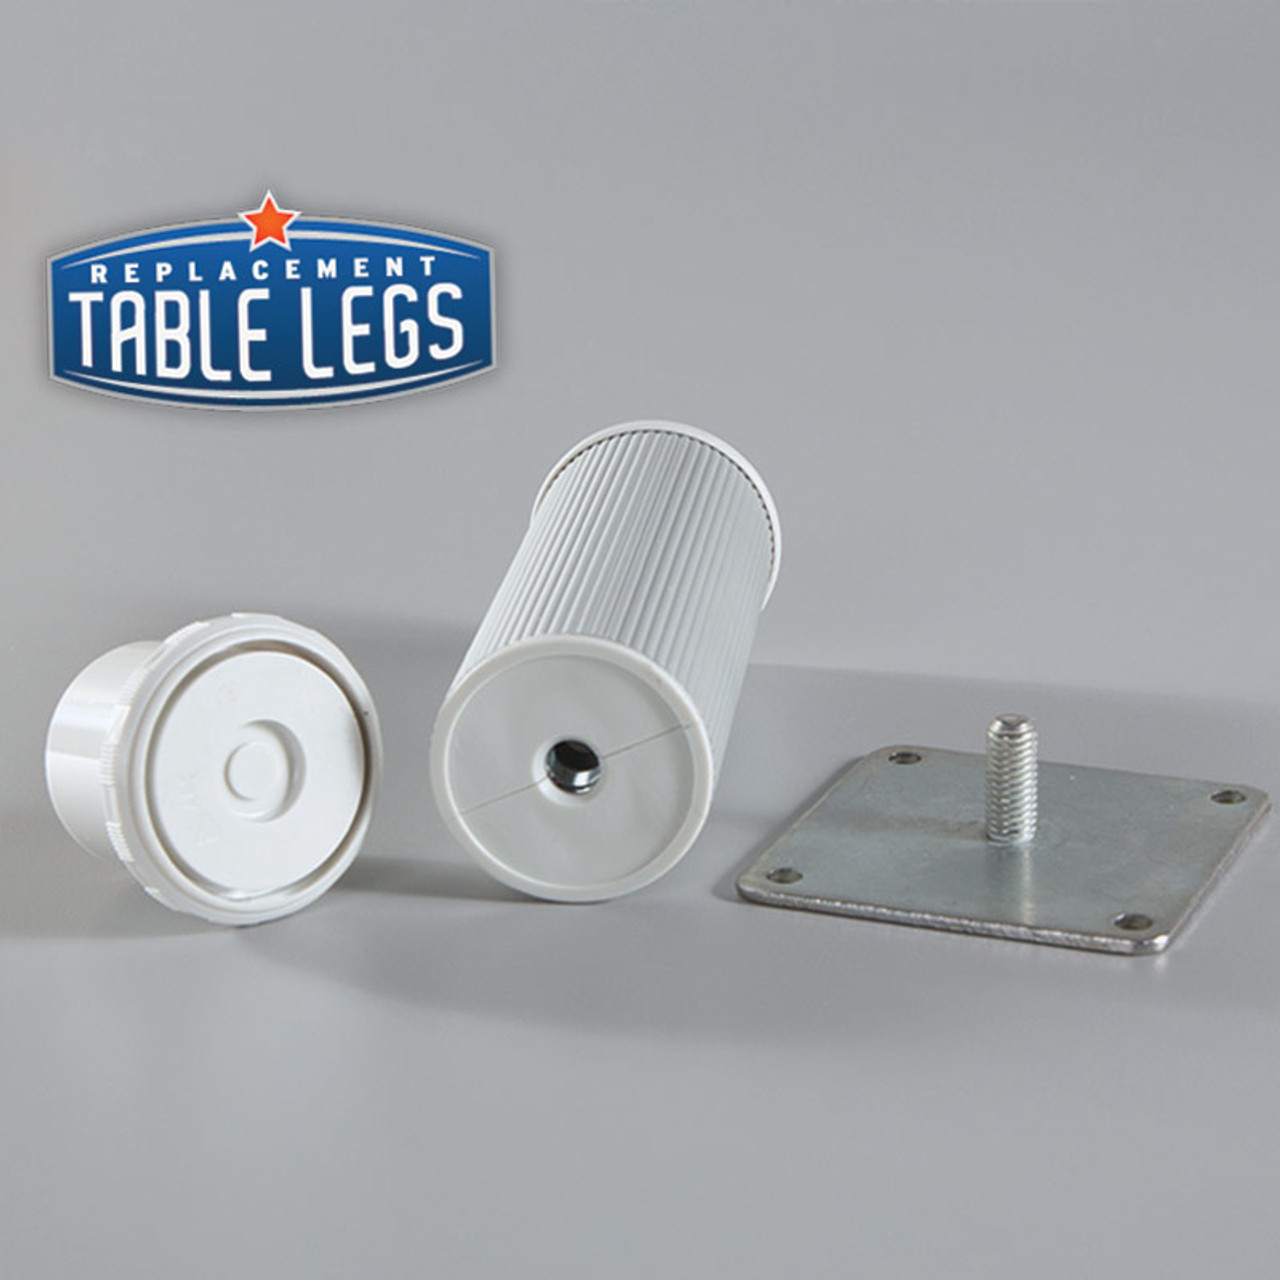 Alumina Como Leg, 6'' Cabinet Leg,  2'' diameter with adjustable foot removed - replacementtablelegs.com